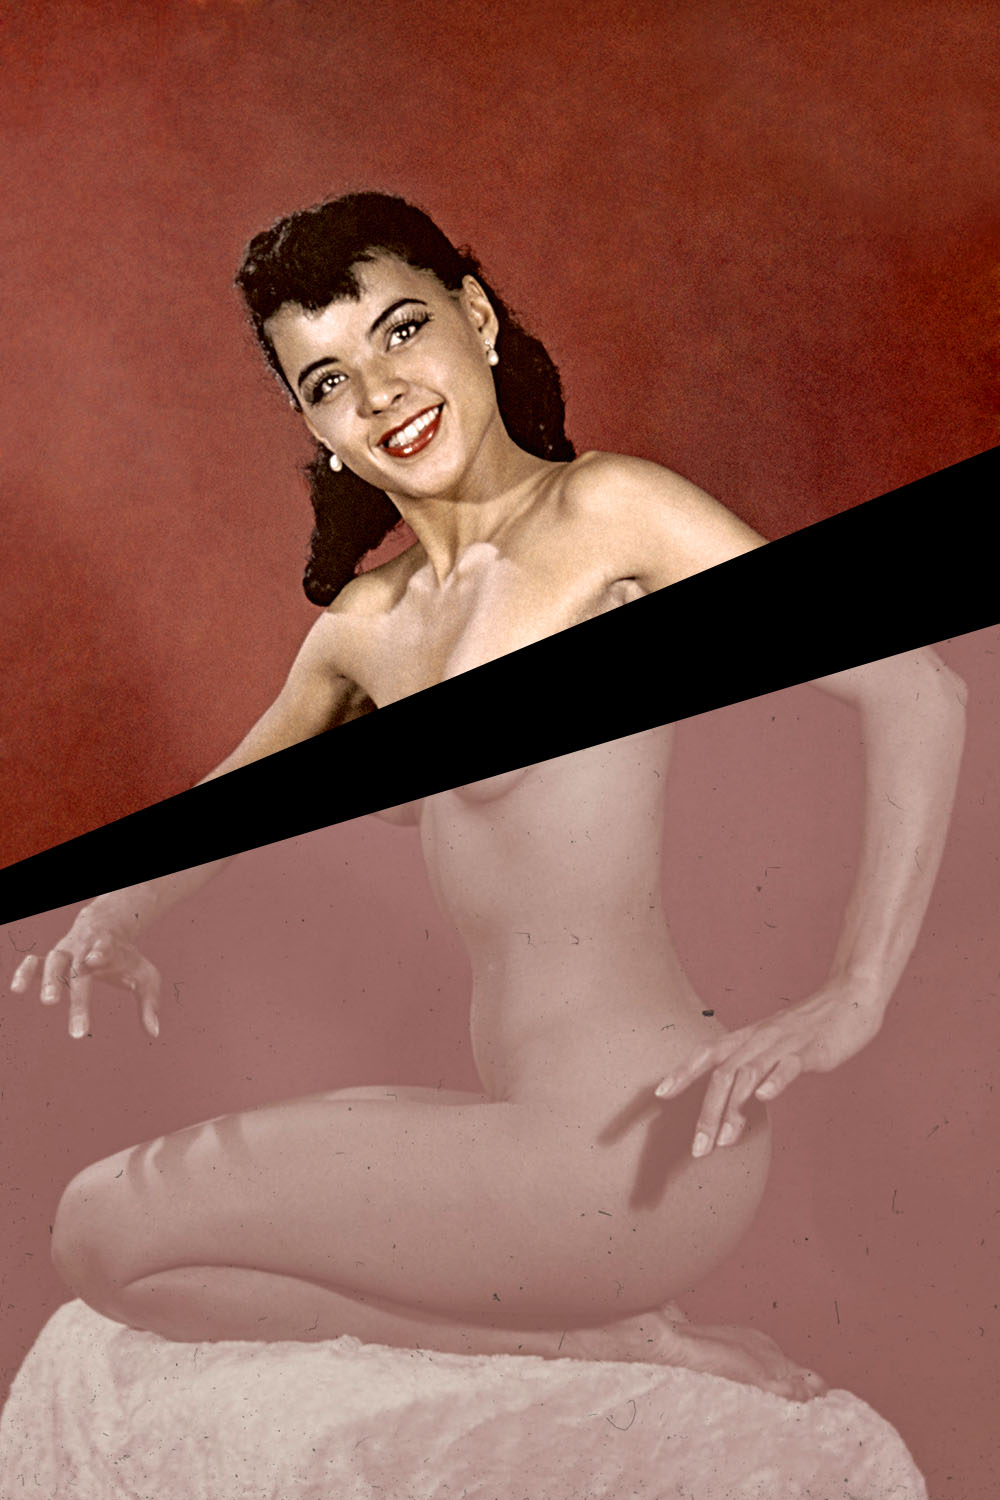 1950s-era pinup of a nude woman posing against a red background.